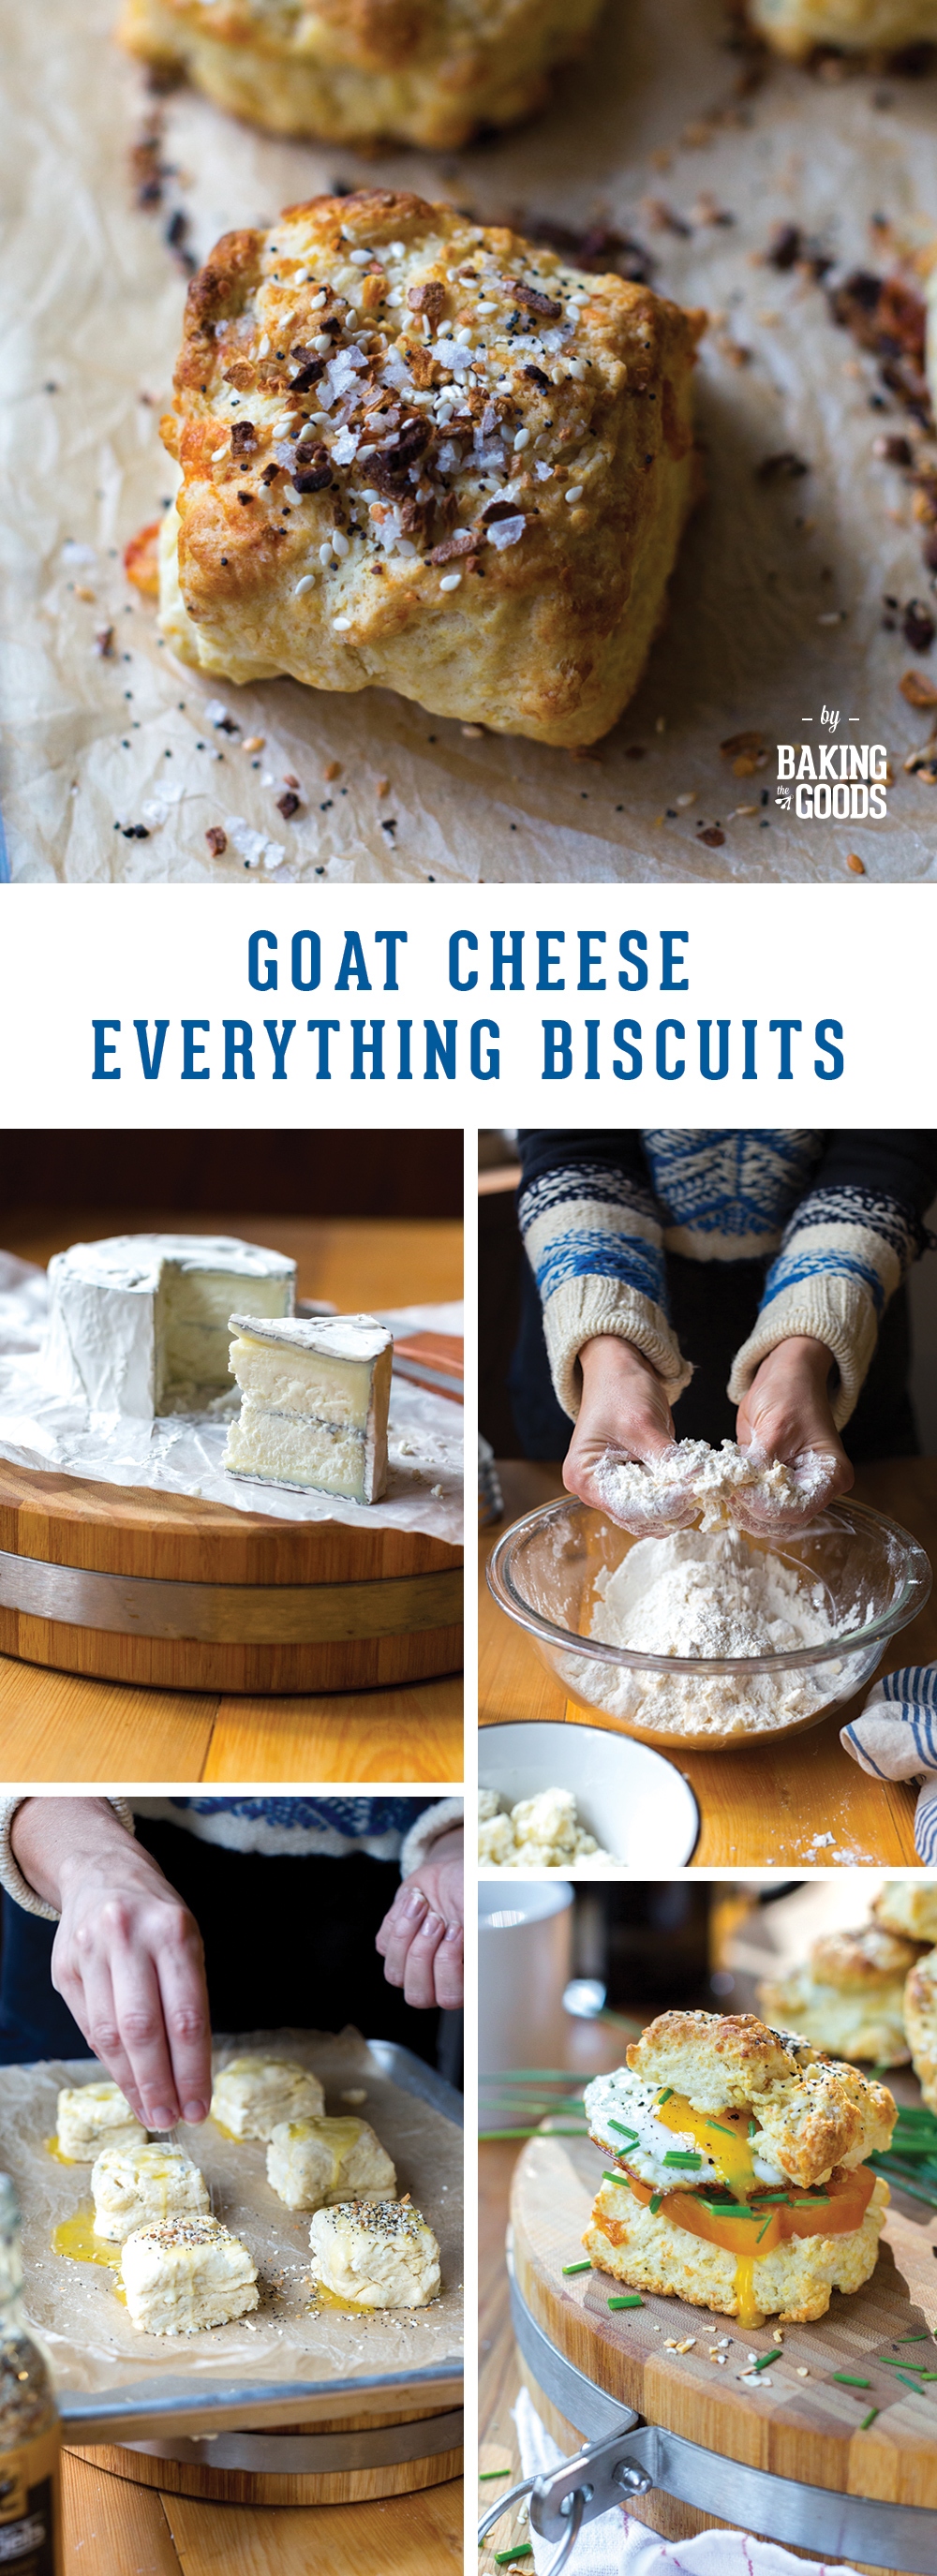 Goat Cheese Everything Biscuits by Baking The Goods